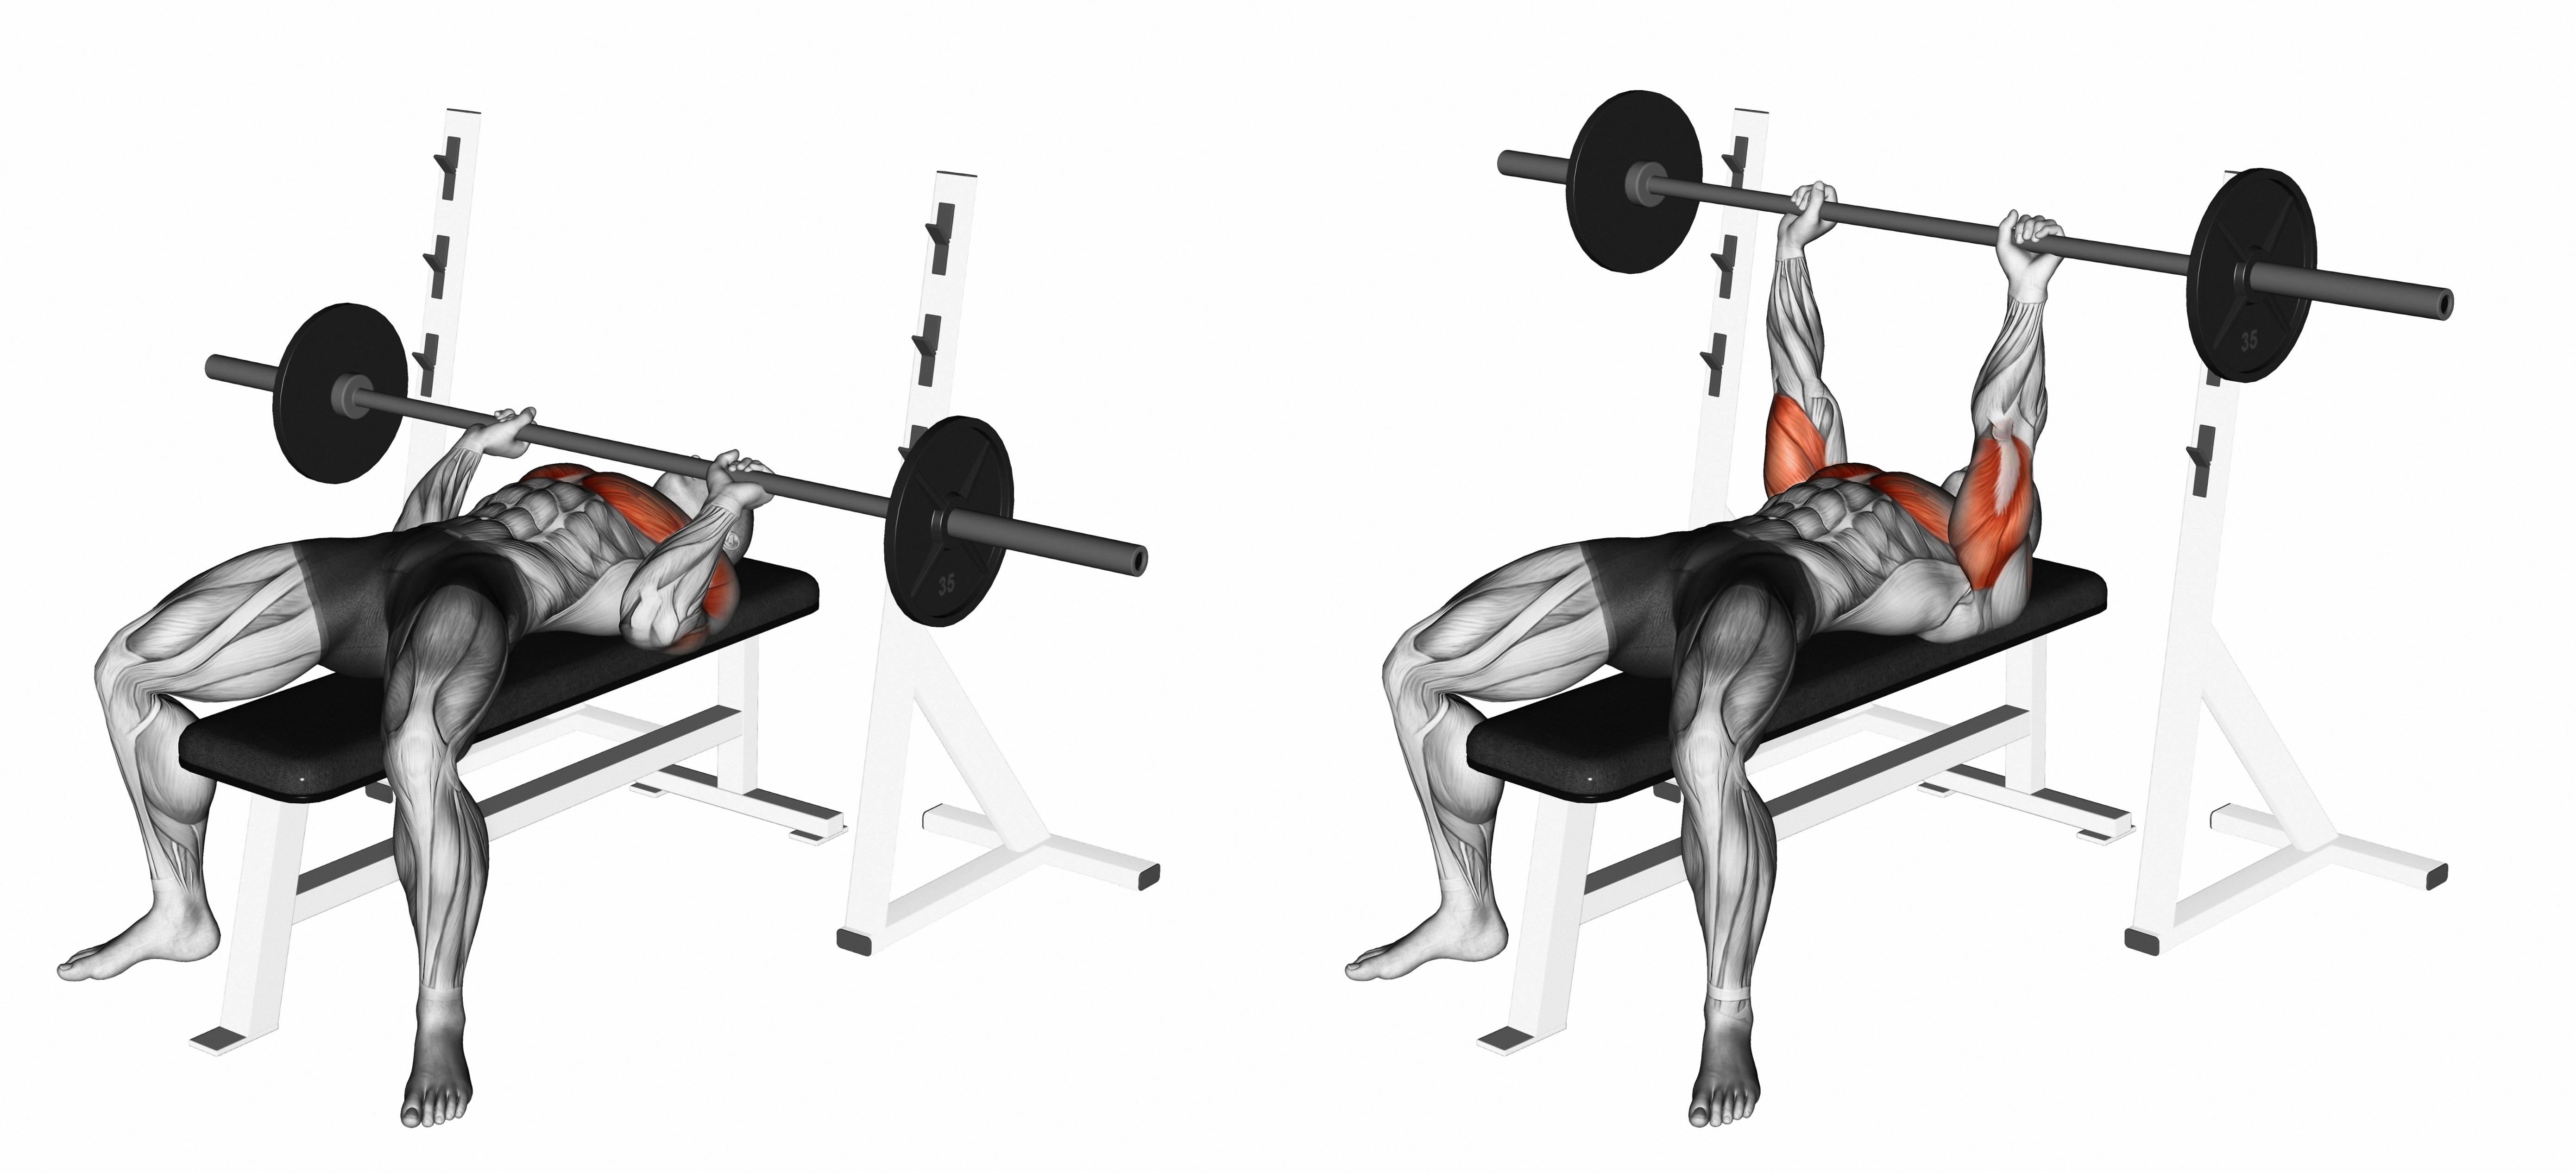 Best 5 Chest Exercises For Men - Build Strong Chest |Flat Bench Press Muscles Worked